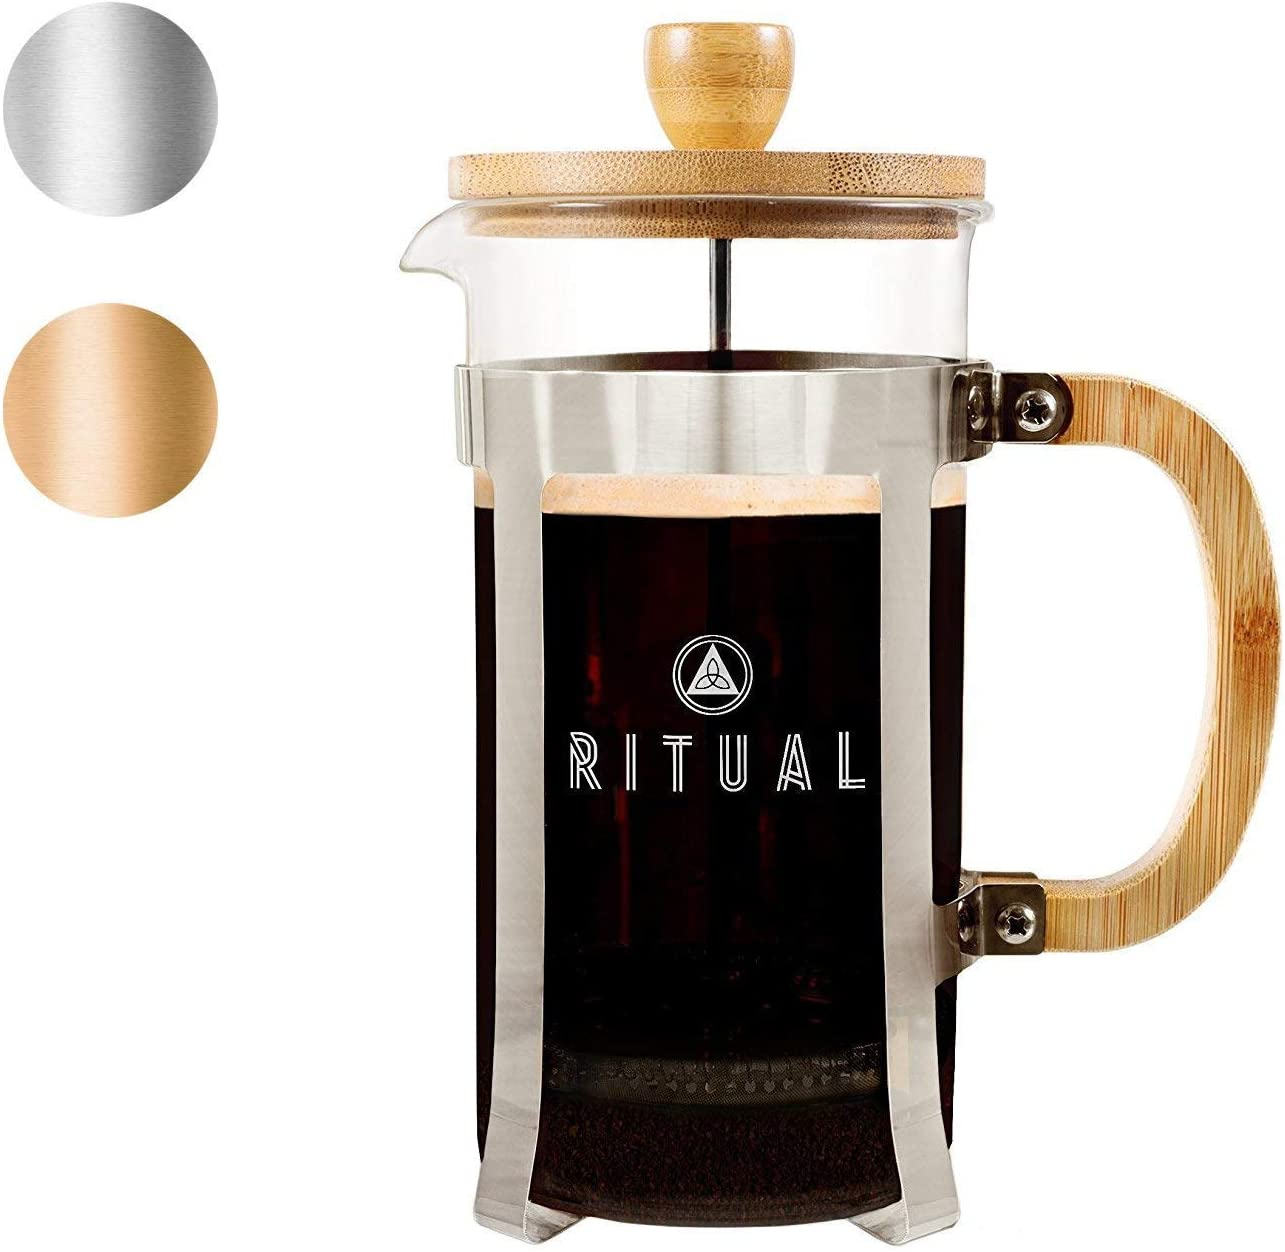 Ritual French Coffee Press New 2019 Version , Bamboo Wood, Borosilicate Glass, and Stainless Steel, Coffee Tea Maker with Bonus Filter 36oz 1000ml